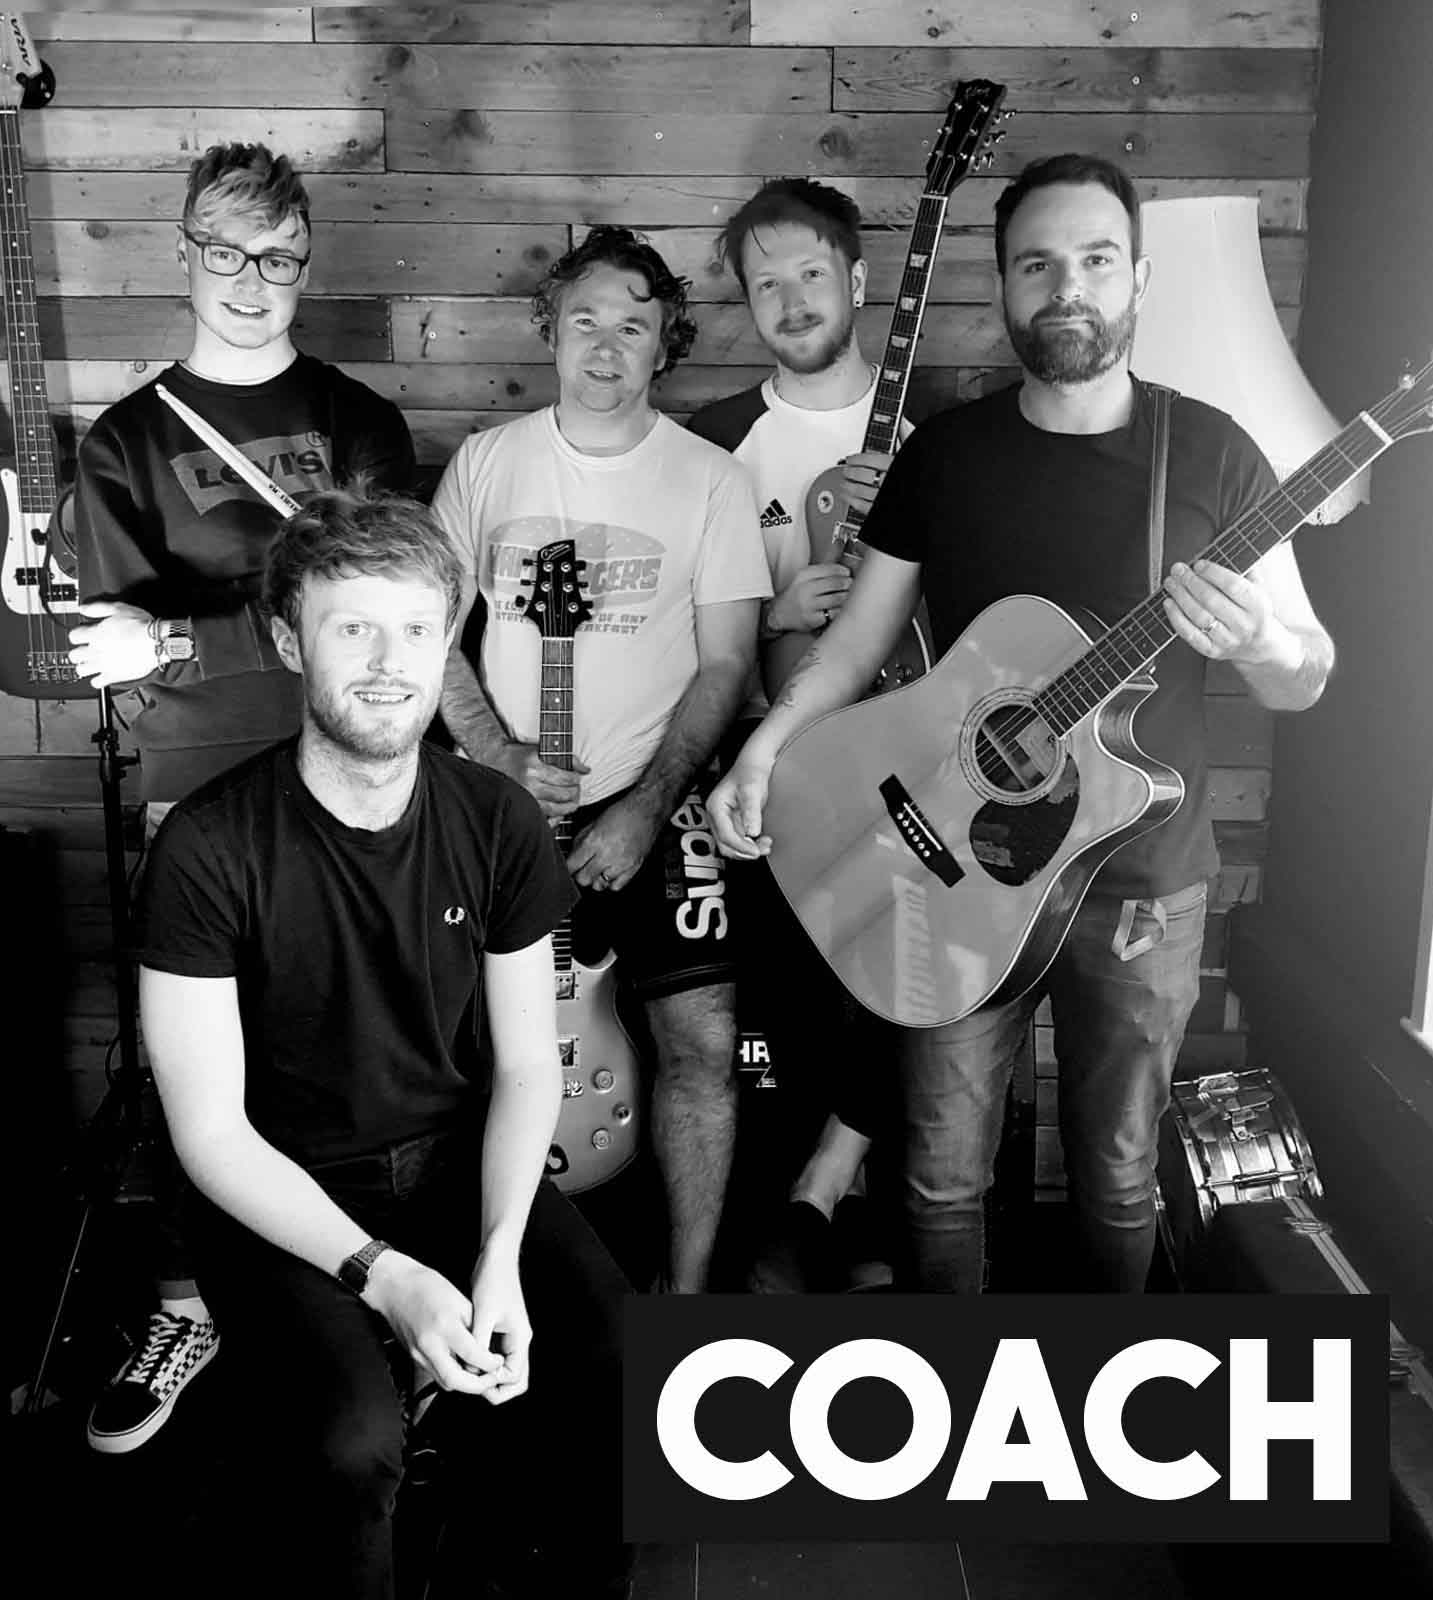 Coach - the band